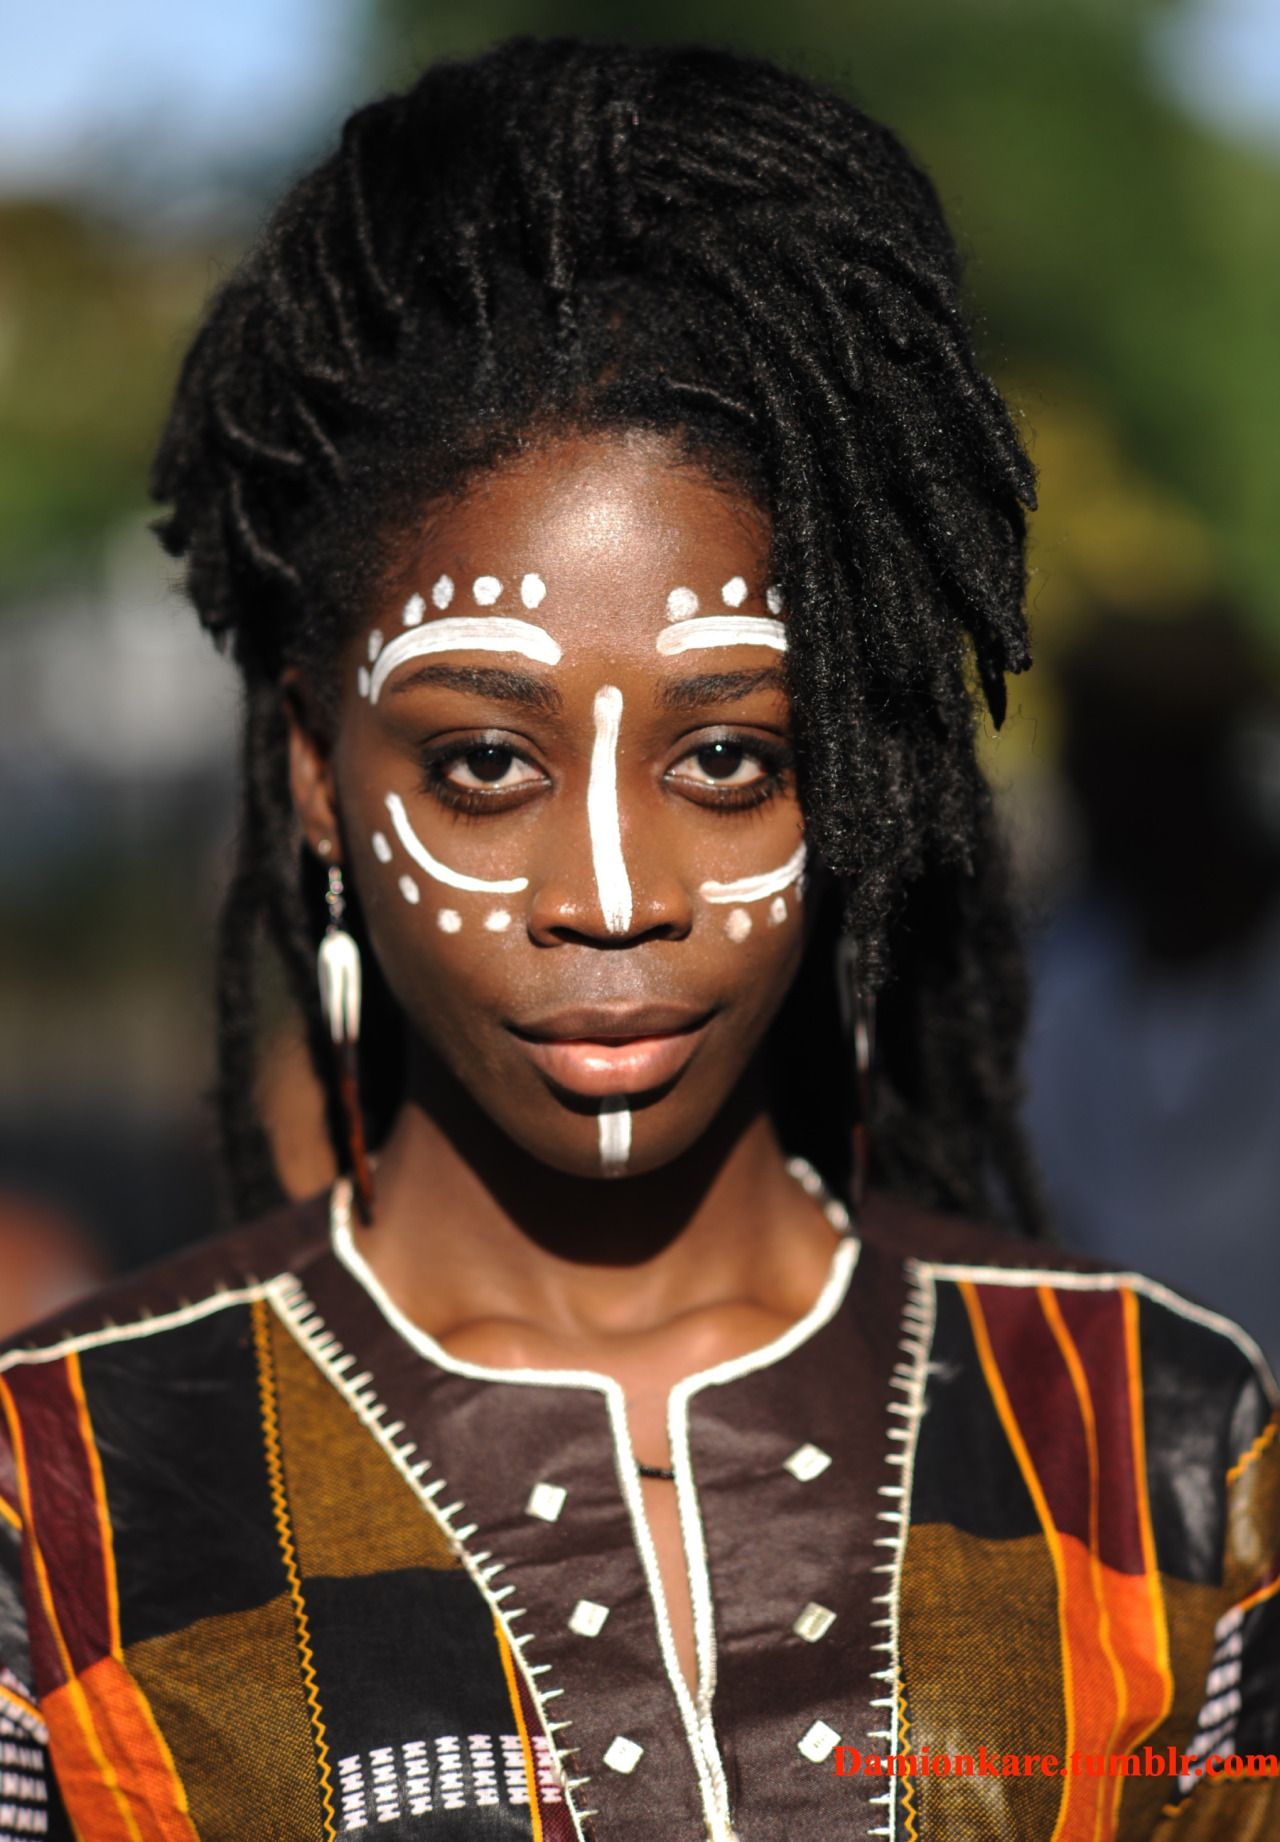 African makeup african hair african goddess african style african - Goddess Makeup Black Girls Black Women African Beauty Black Beauty Body Paint The Black Dramatic Makeup Afro Style